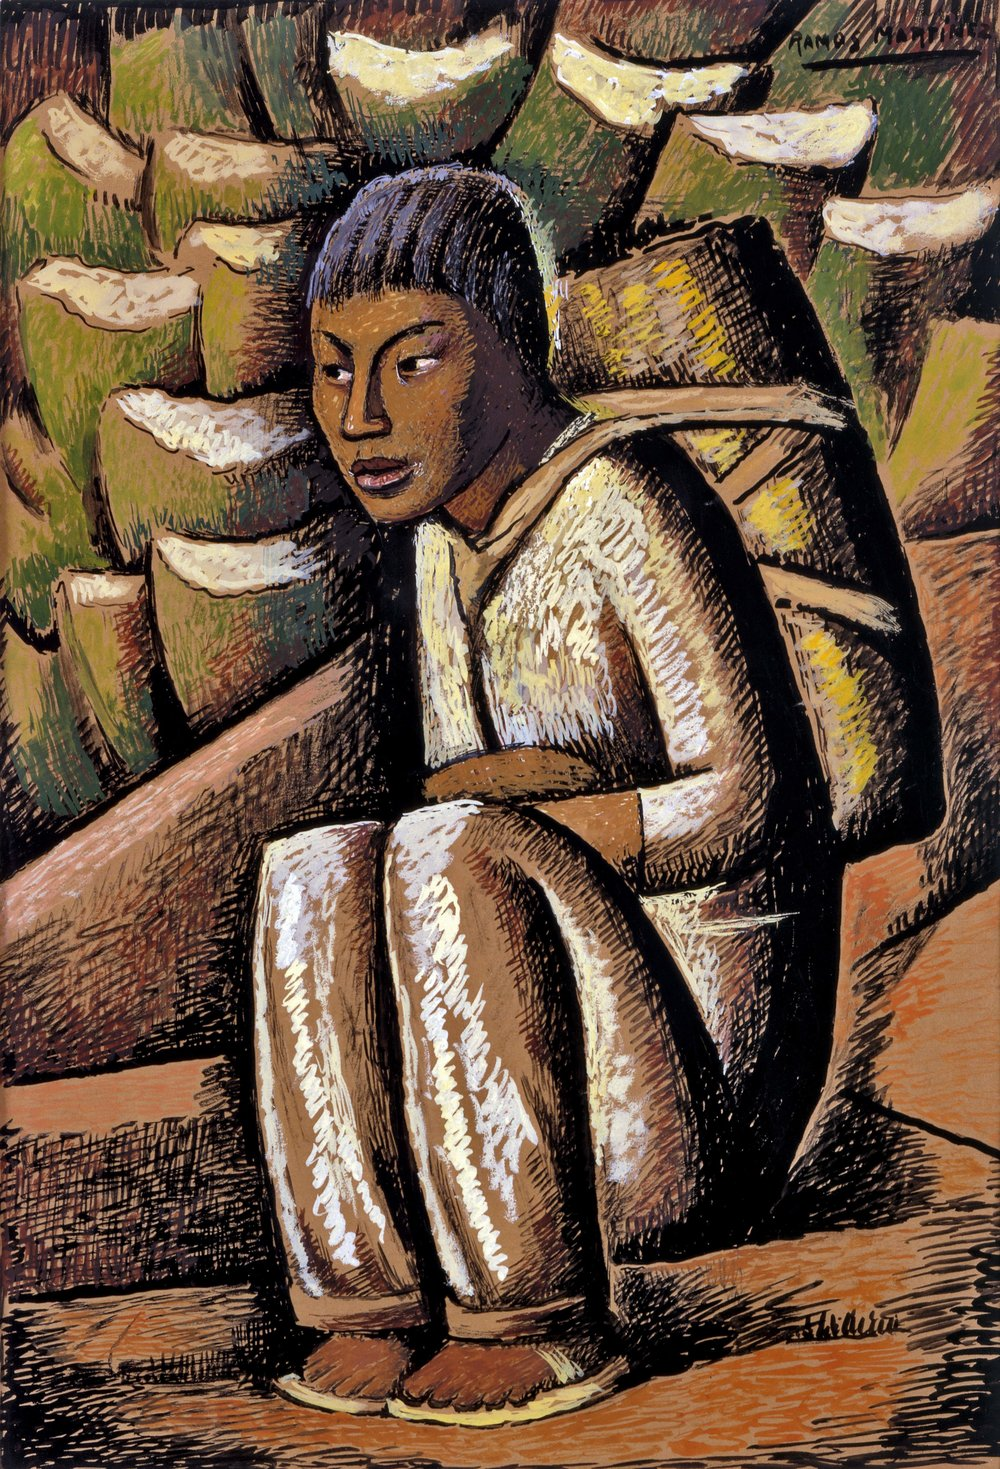 Vendedor de Pulque / Pulque Vendor  ca. 1938 tempera on paper / temple sobre papel 16.9 x 11.4 inches; 42.9 x 28.9 centímetros